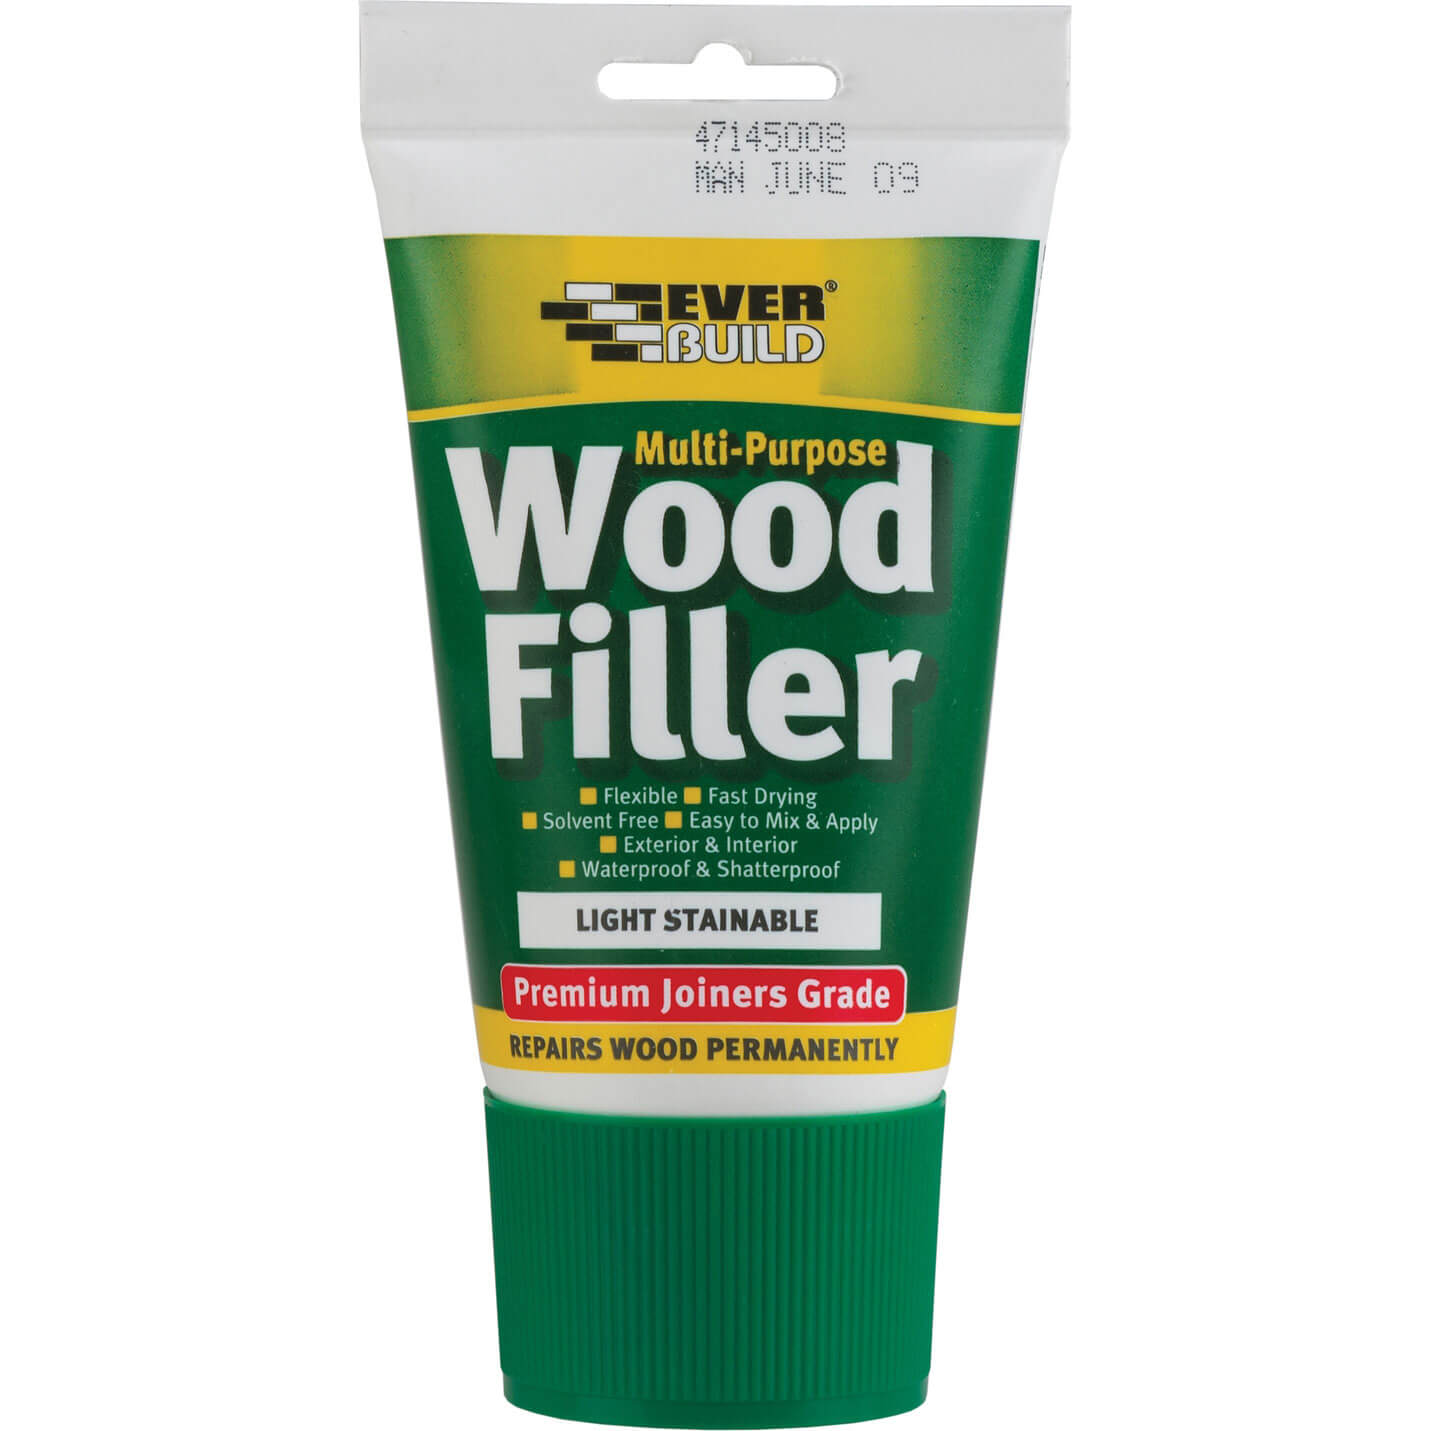 Tooled Up/Sealants & Adhesives/Fillers/Everbuild Multi Purpose Premium Joiners Grade Wood Filler Easi Squirt Light 100ml